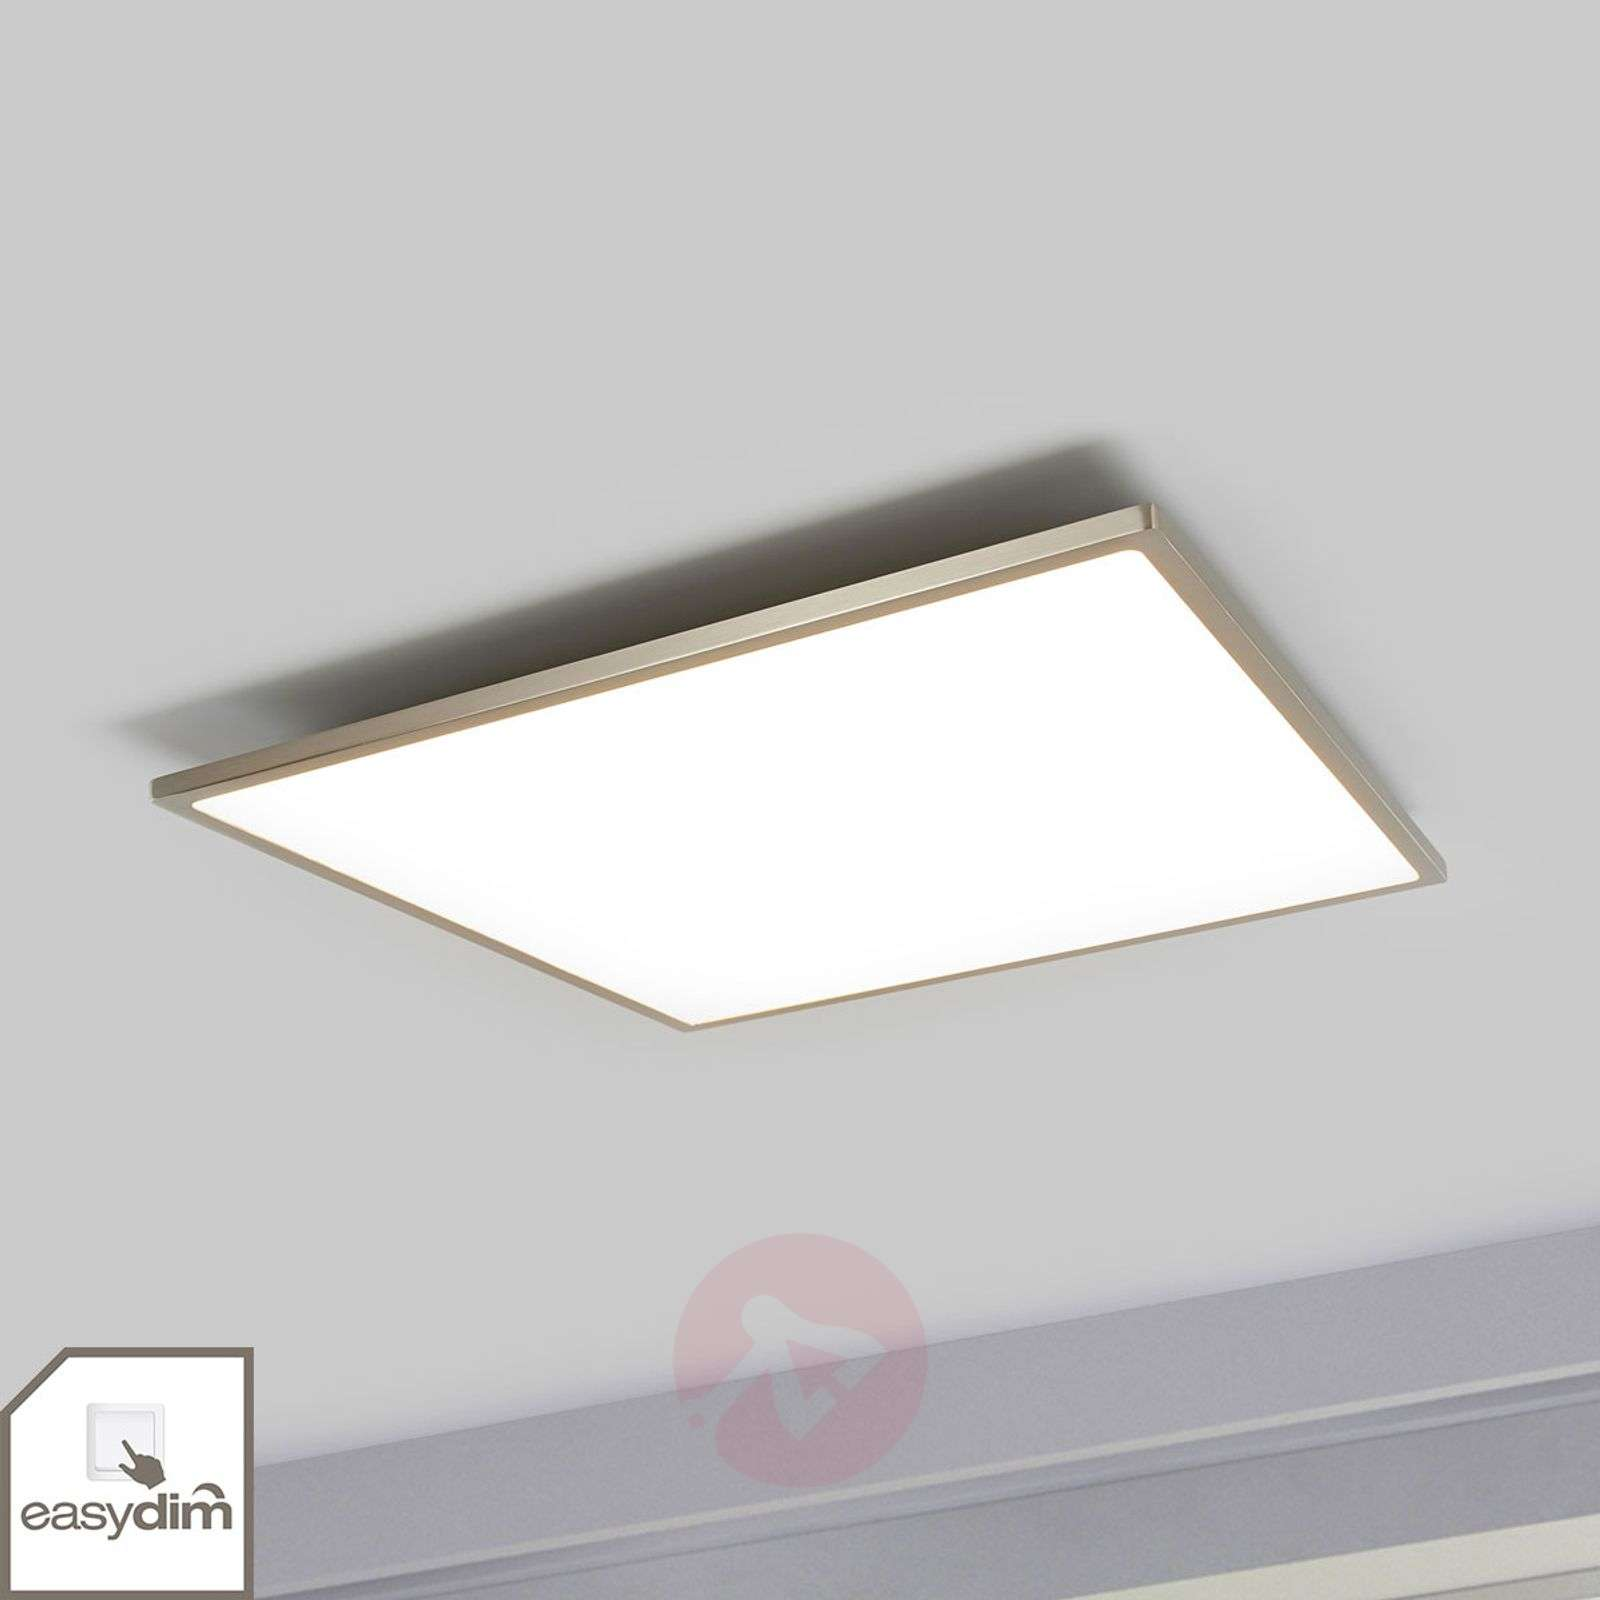 Plafoniera Quadrata Philips : Acquista plafoniera led ceres quadrata easydim lampade